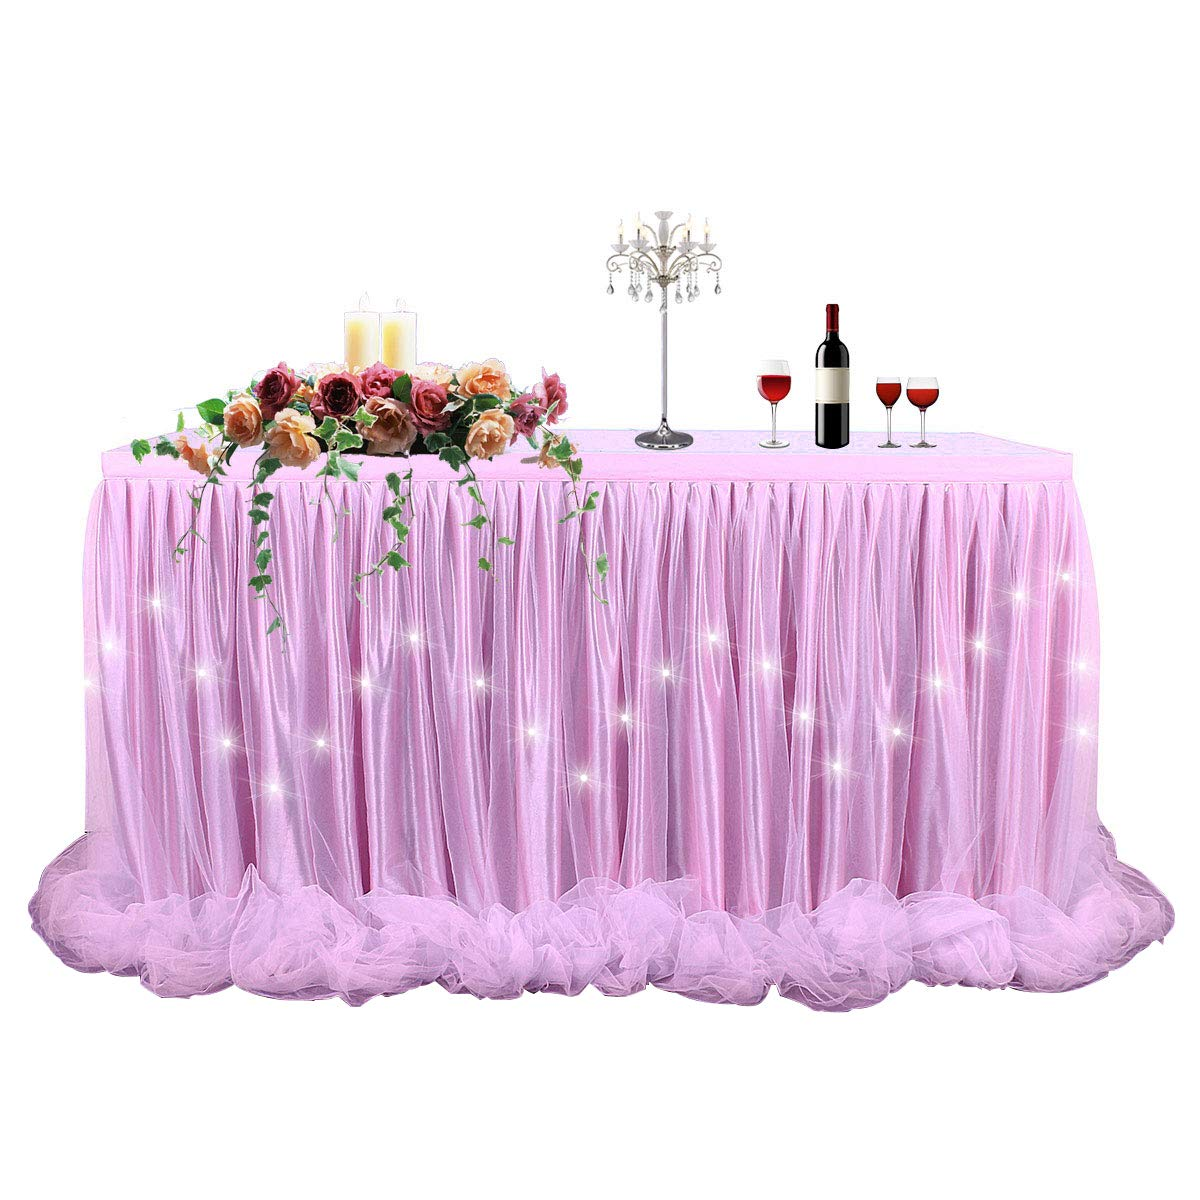 LED Table Skirt 9ft Pink Tulle Table Skirt Tutu Table Skirting for Rectangle or Round Table for Baby Shower Wedding and Birthday Party Decoration (L9(ft)*H 30in)